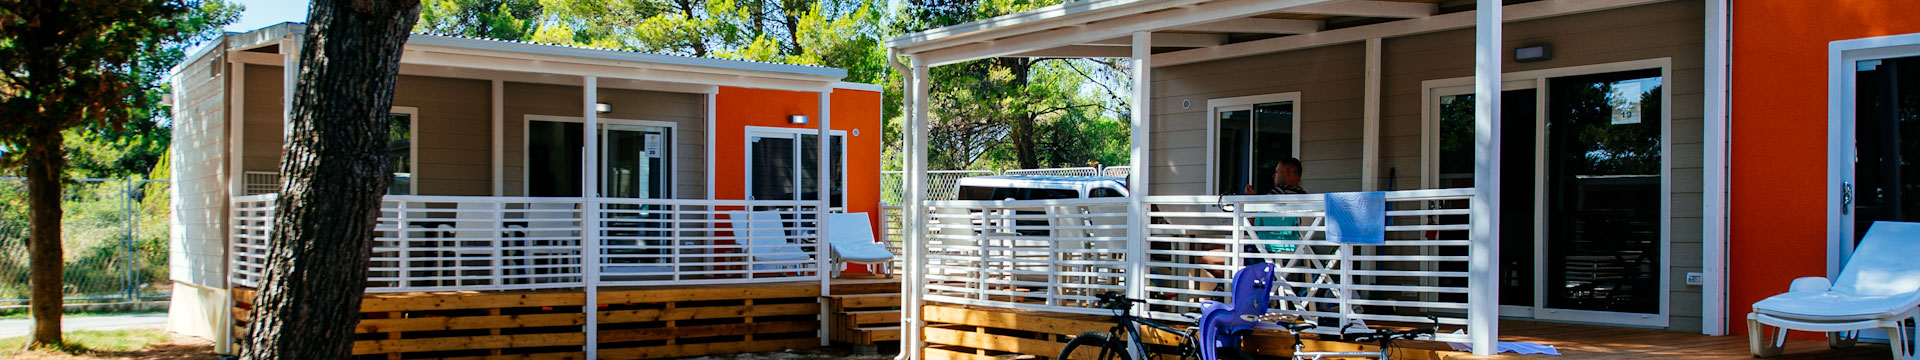 Mobile homes in Zadar | AdriaCamps